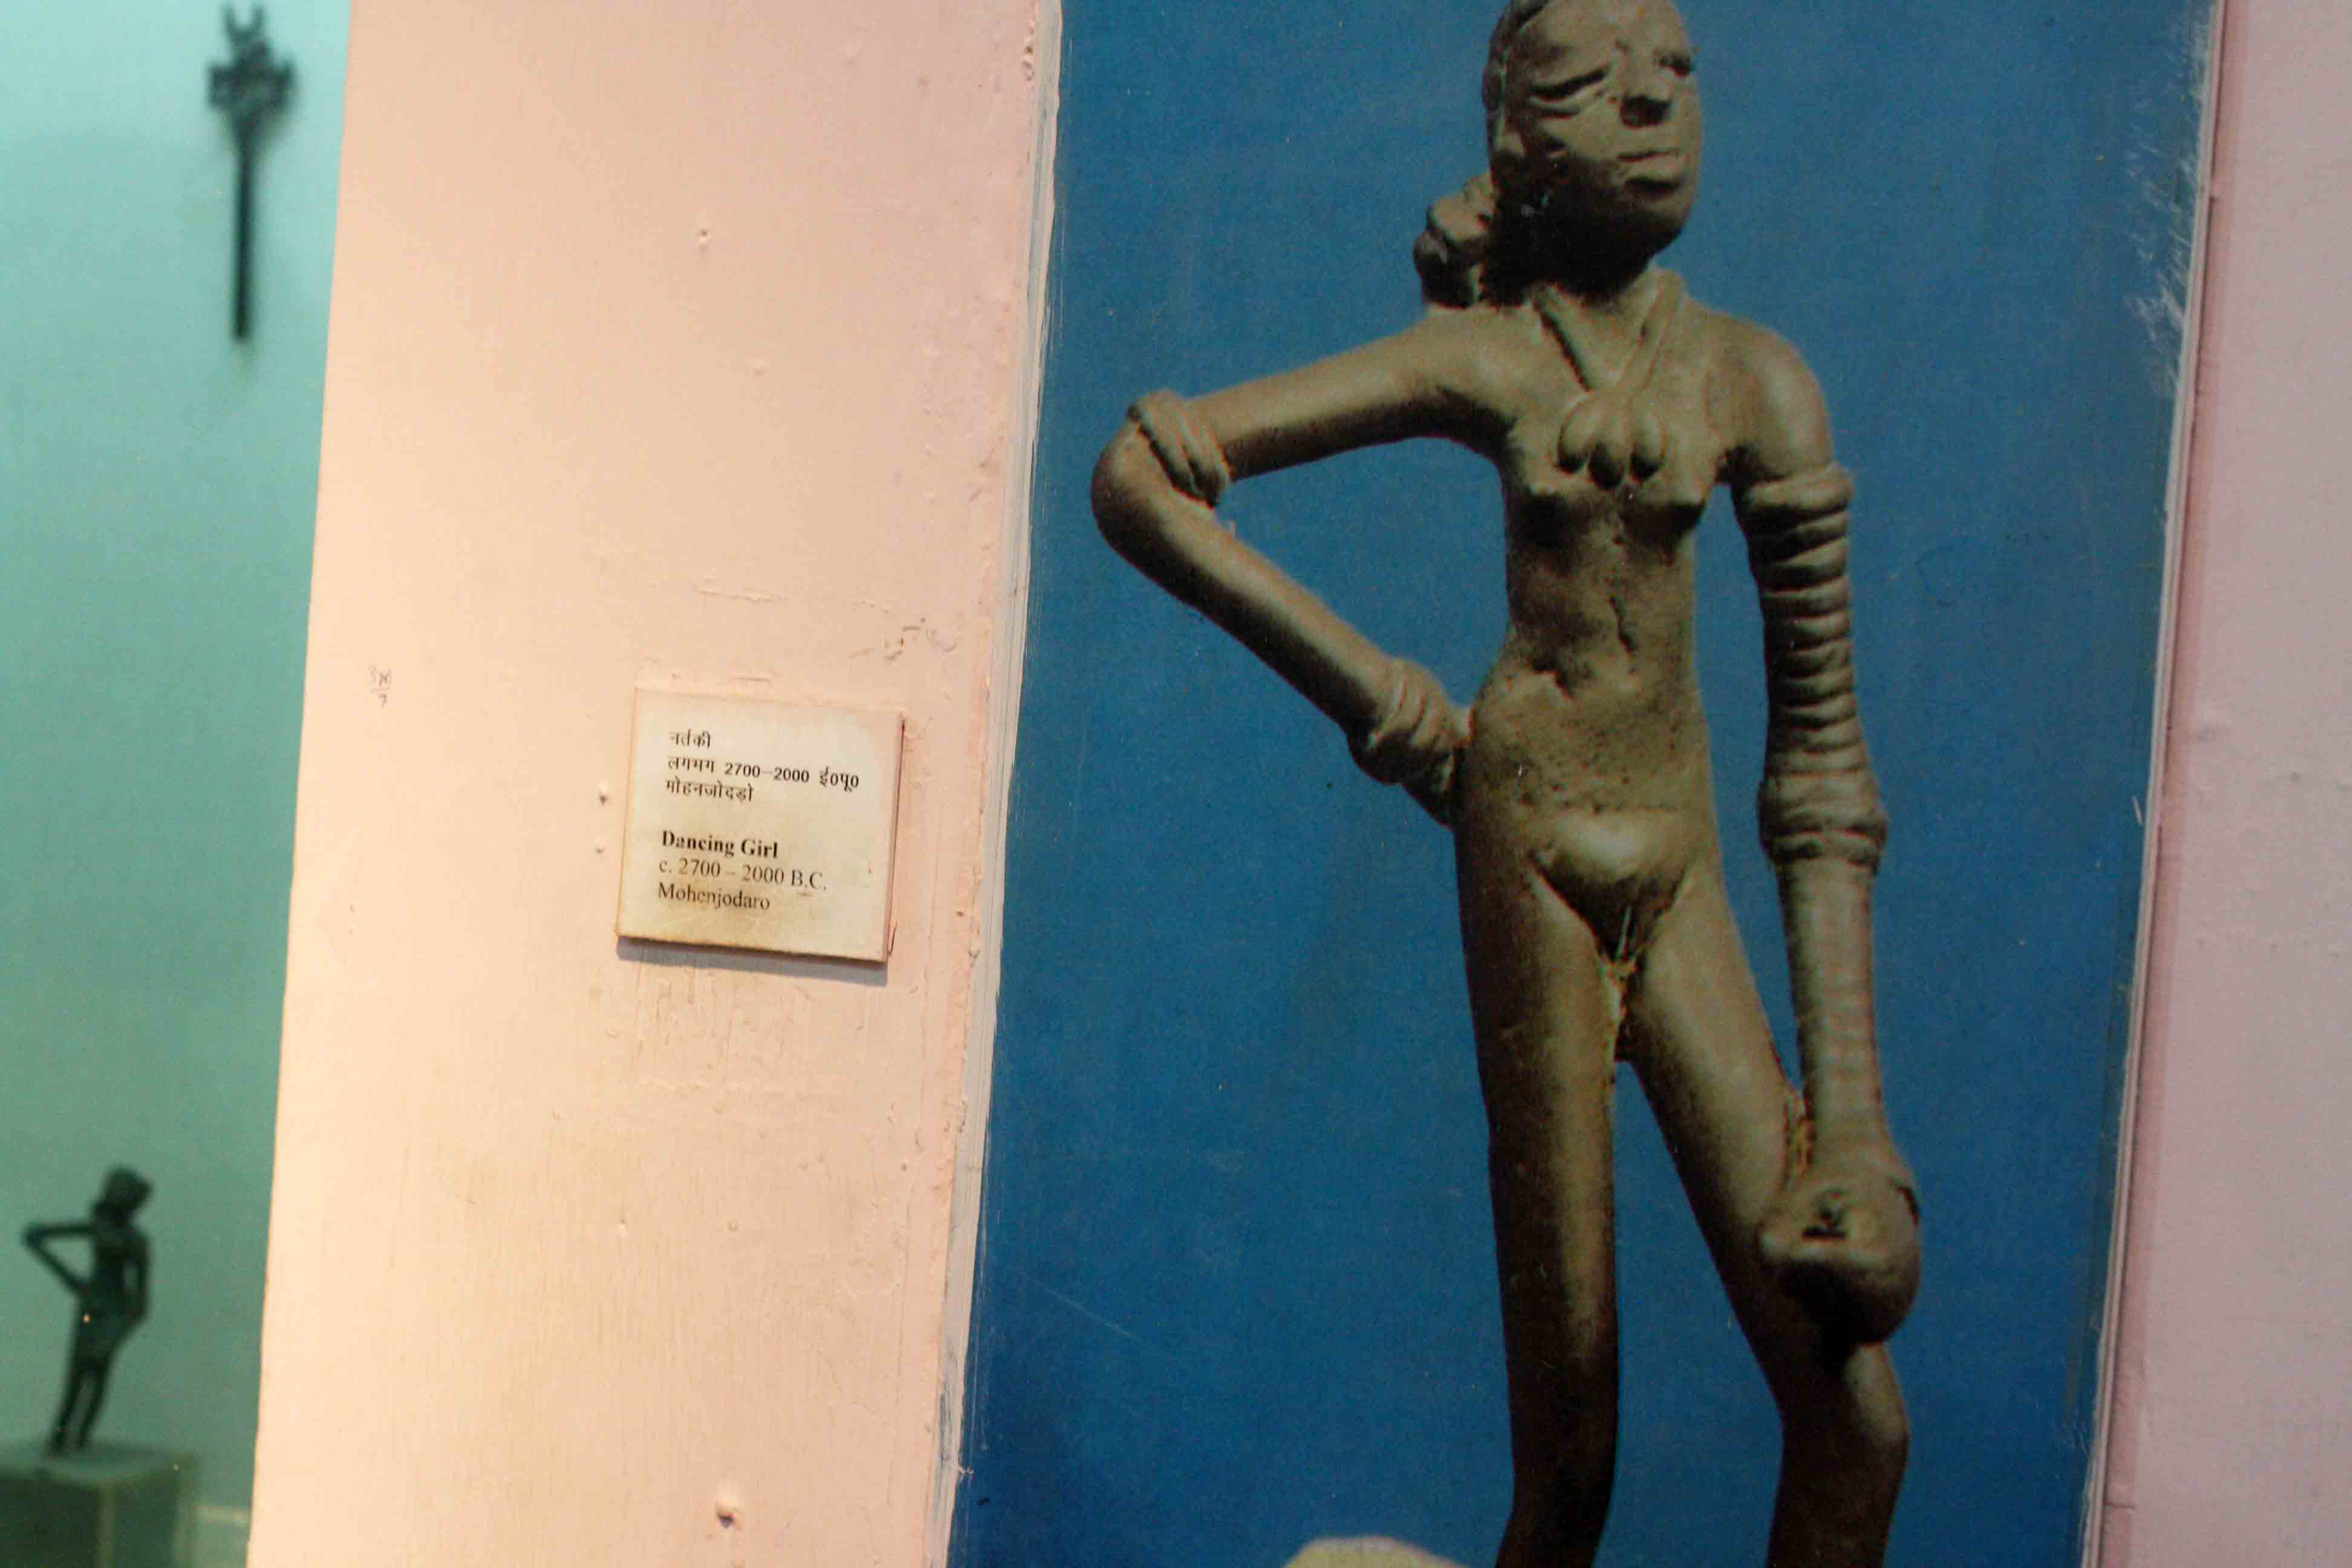 Mapping National Museum – The Dancing Girl, 2500 BC